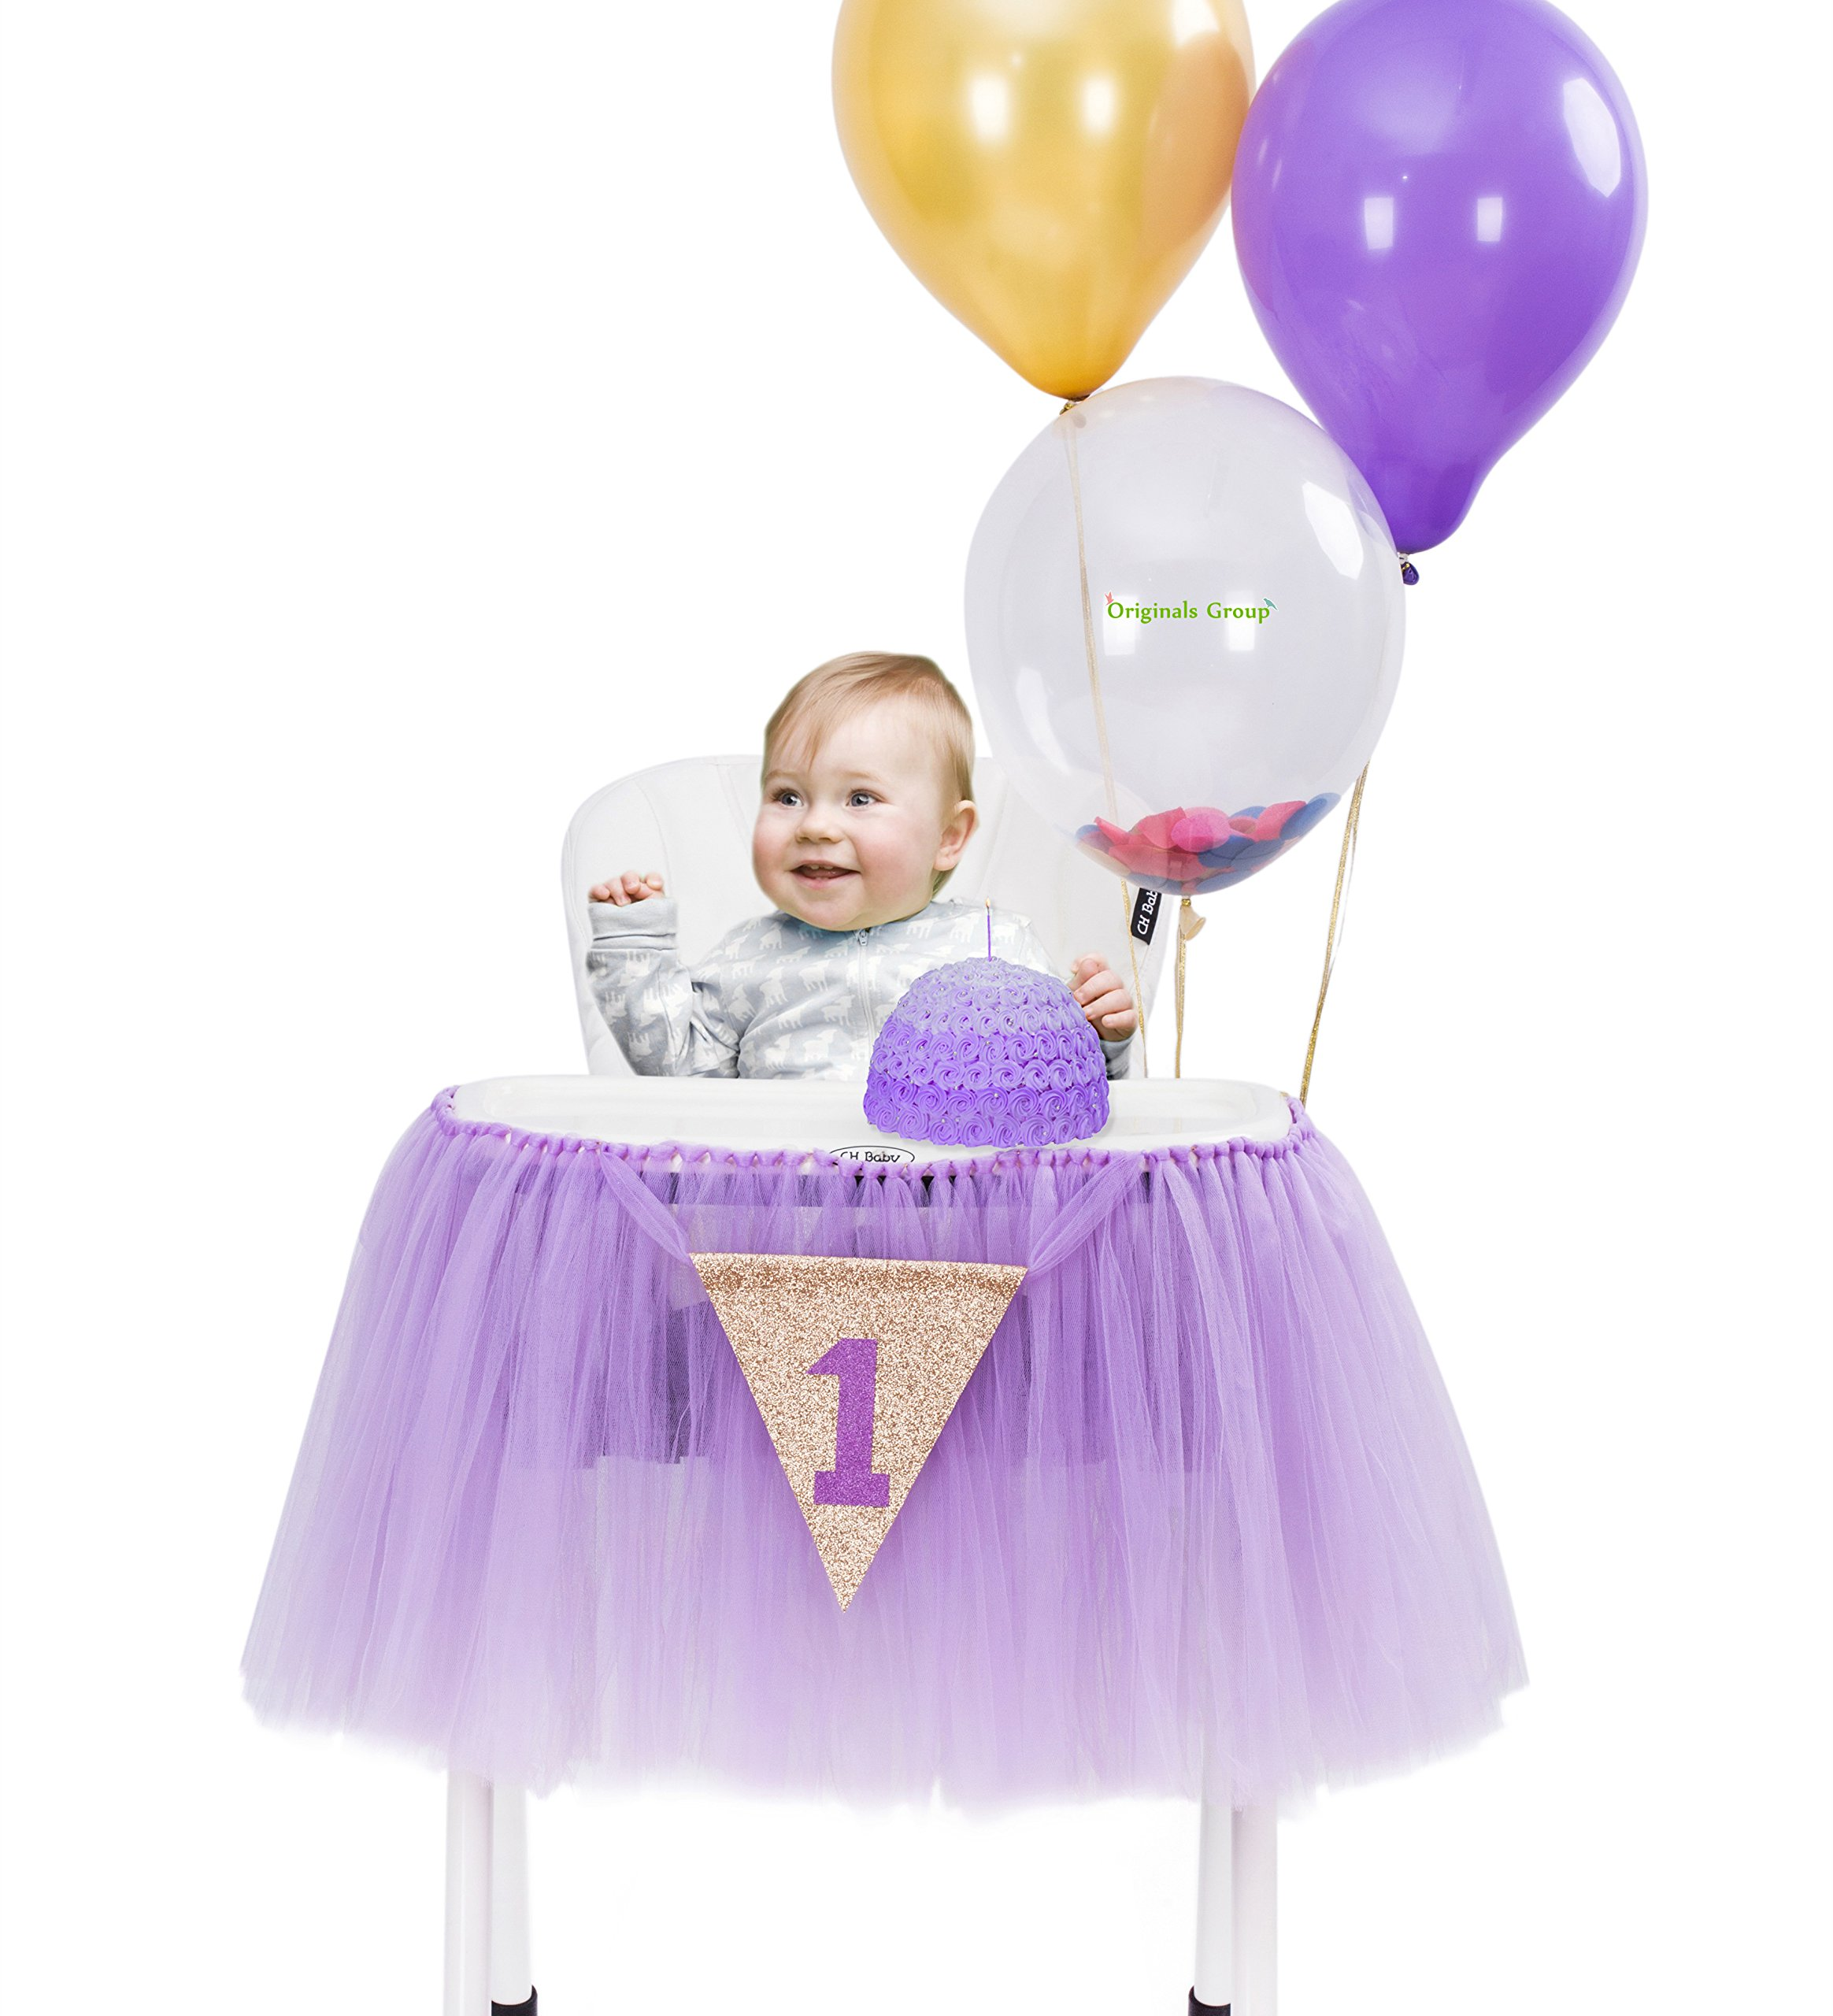 Originals Group 1st Birthday Originals Group 1st Birthday Frozen Tutu for High Chair Decoration for Party SuppliesTutu for High Chair Decoration for Party Supplies (Lavender)